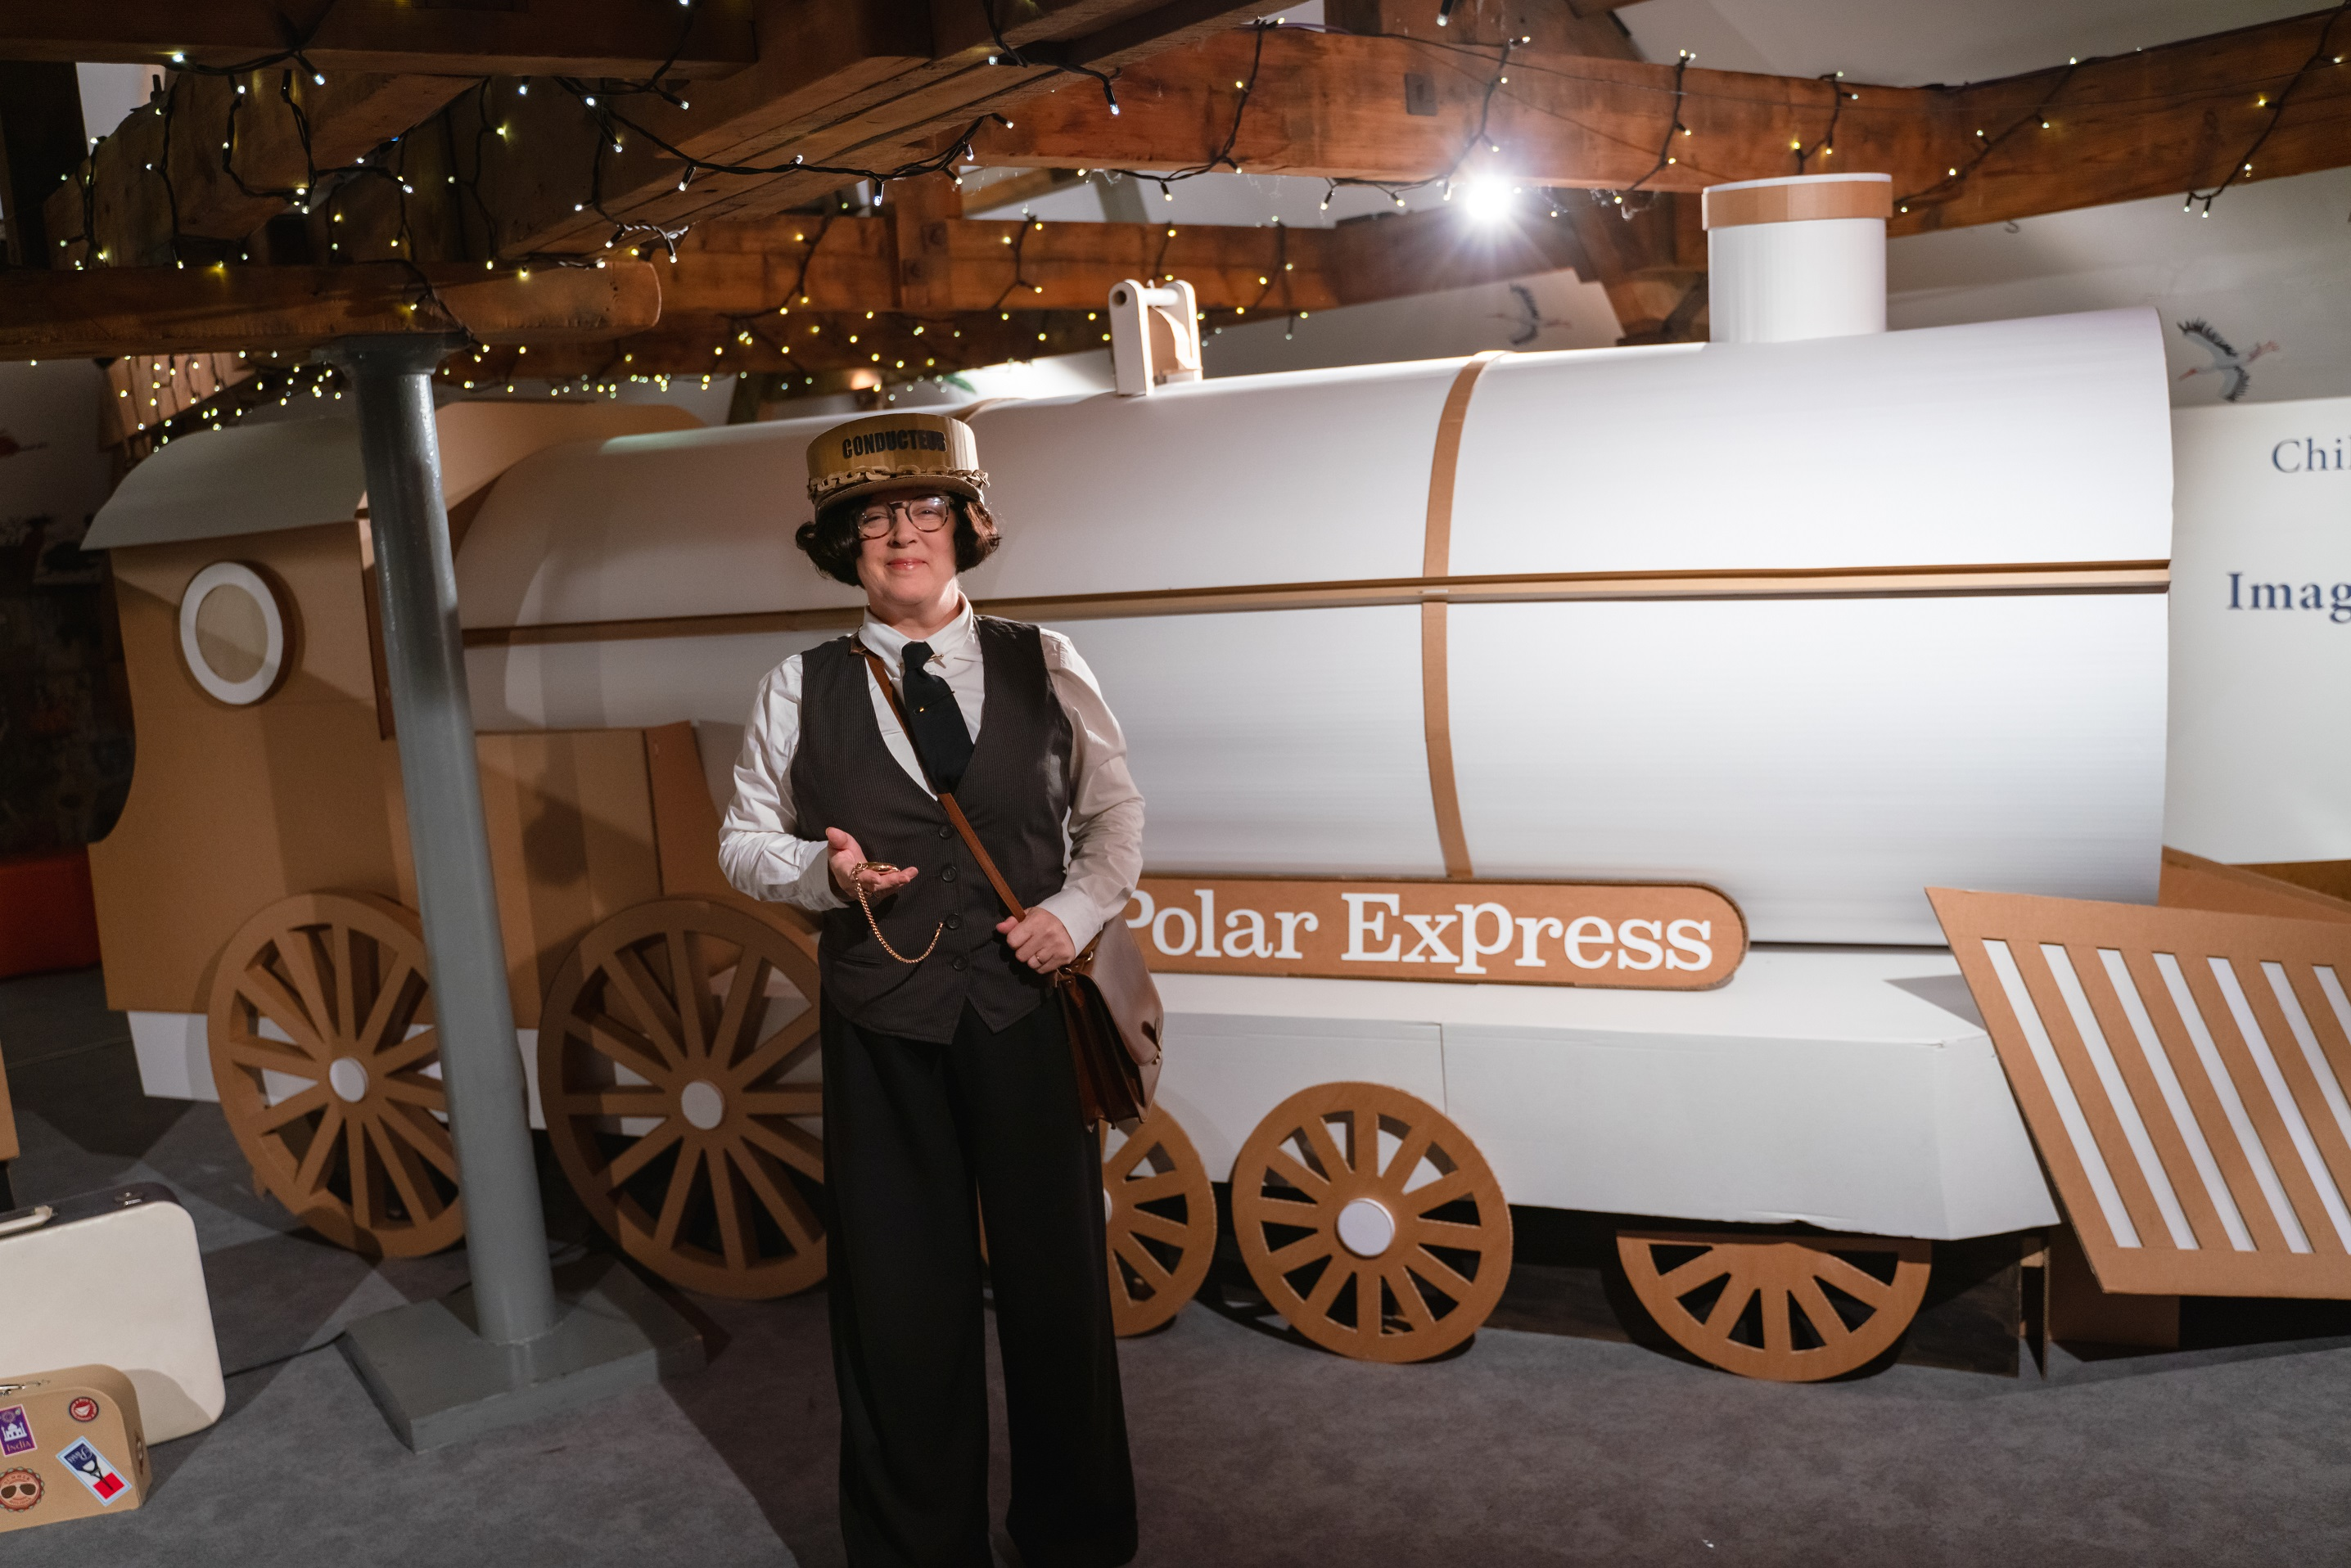 Seven Stories conductor with The Polar Express at Seven Stories.